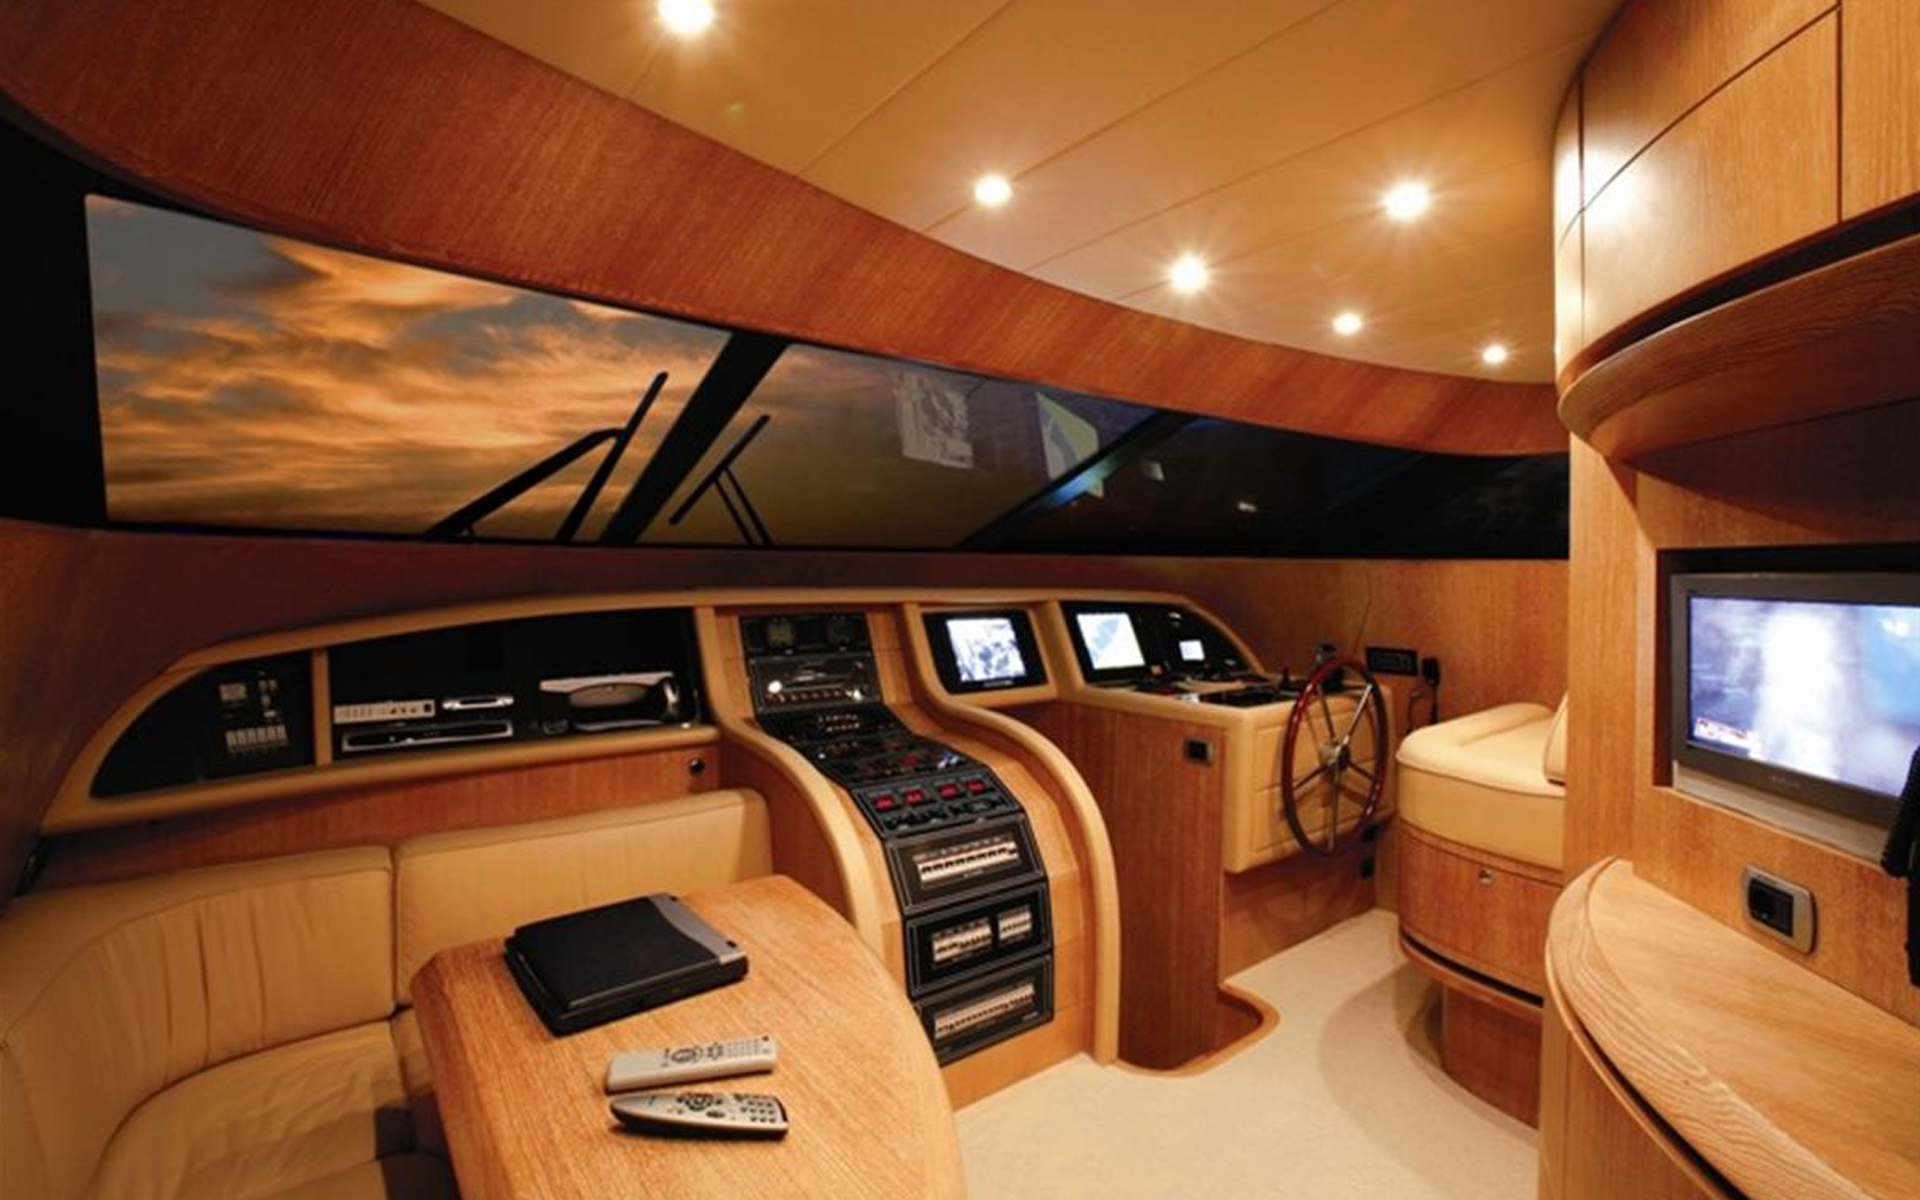 captains dock of a yacht